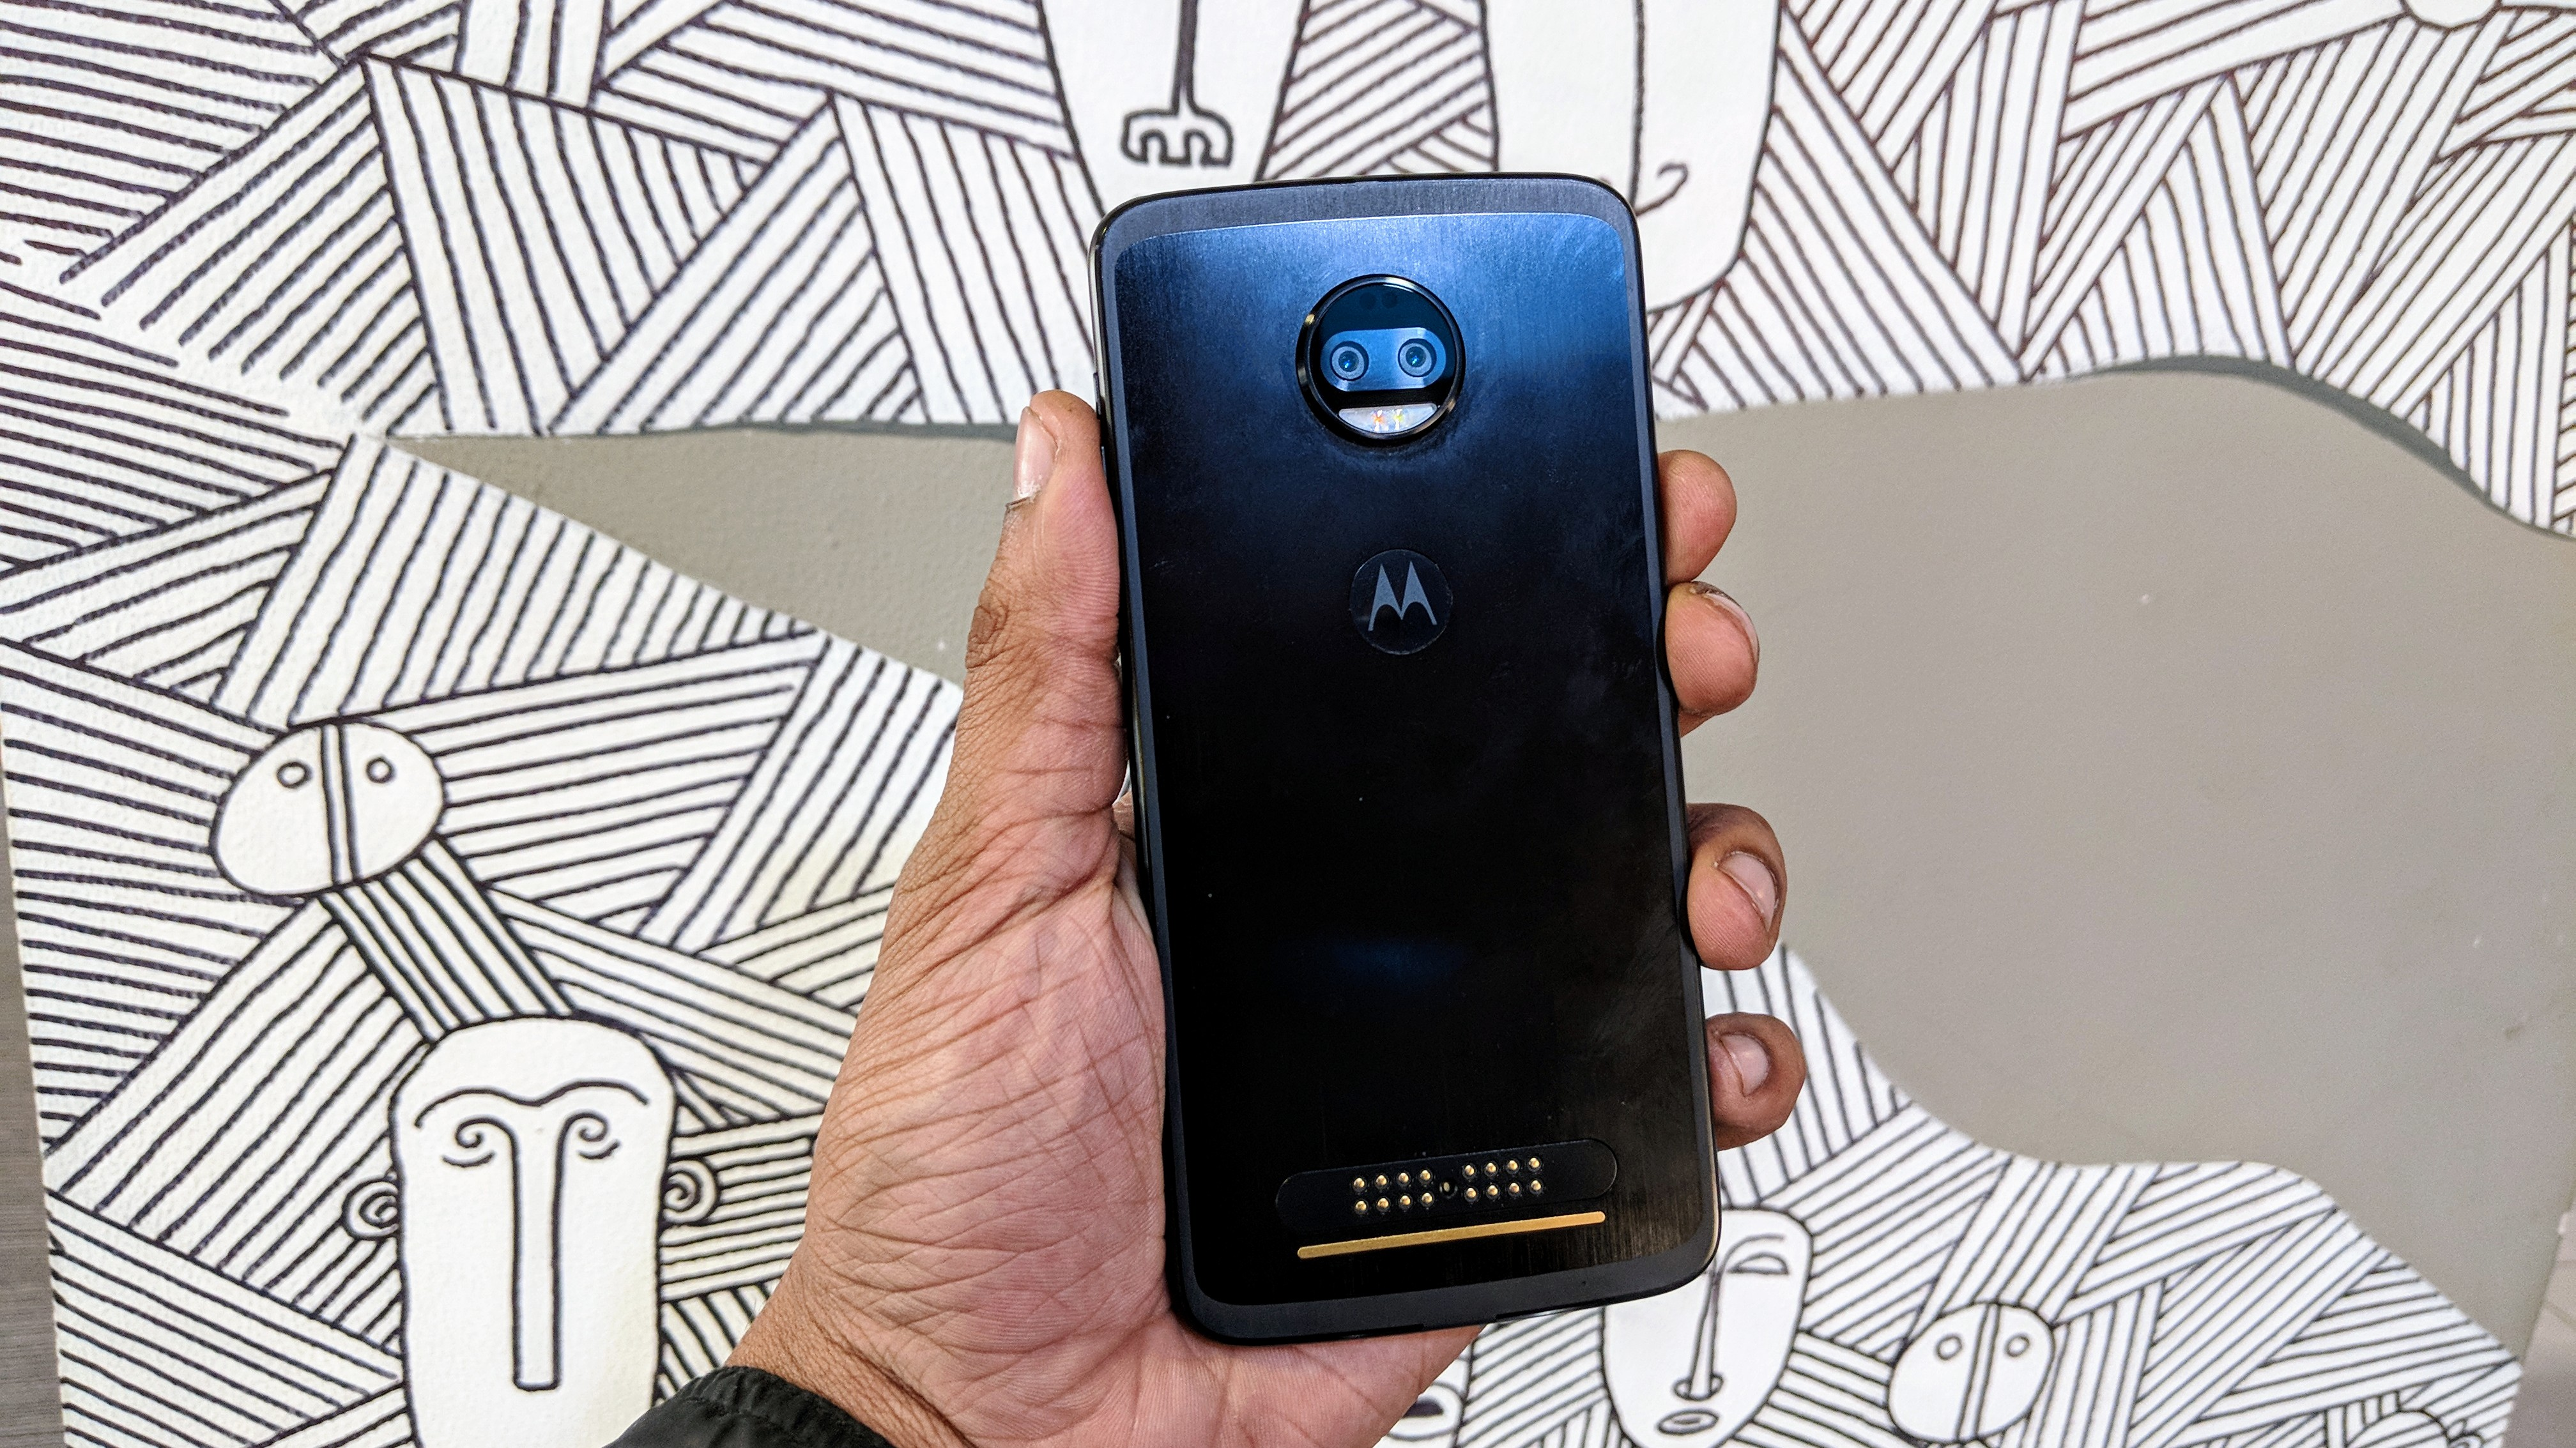 The Moto Z4 could have quad-lens rear camera